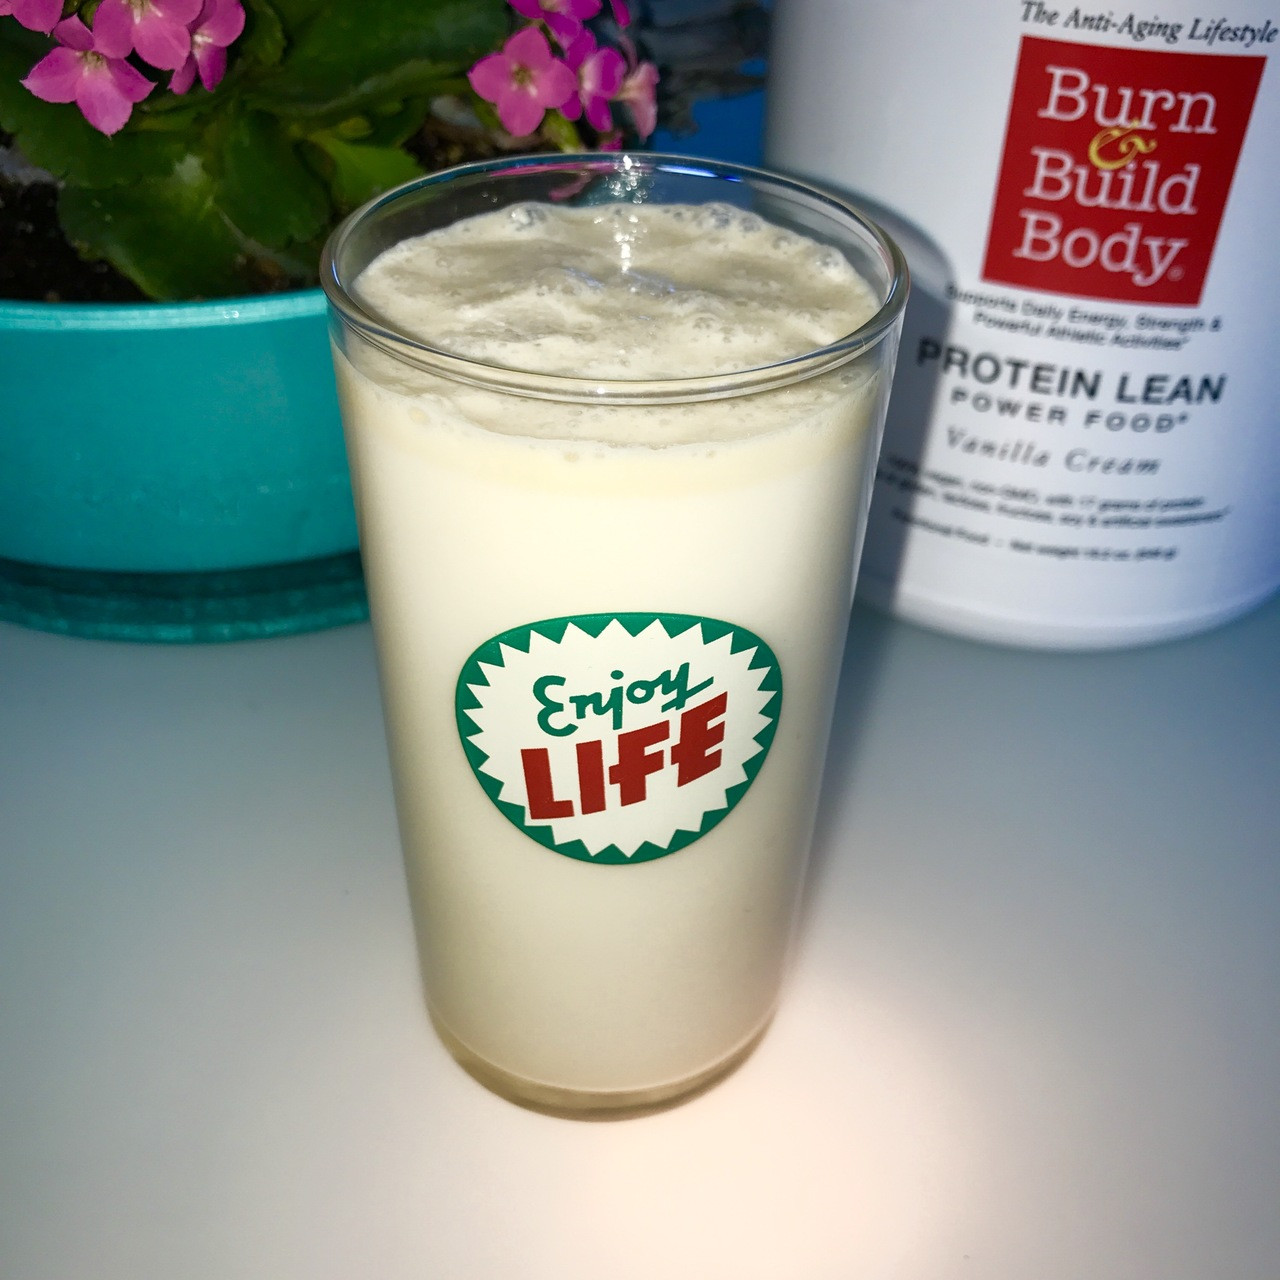 Really vanilla, Protein Lean Vanilla Cream, almond milk... just shake it  up and recharge your body.